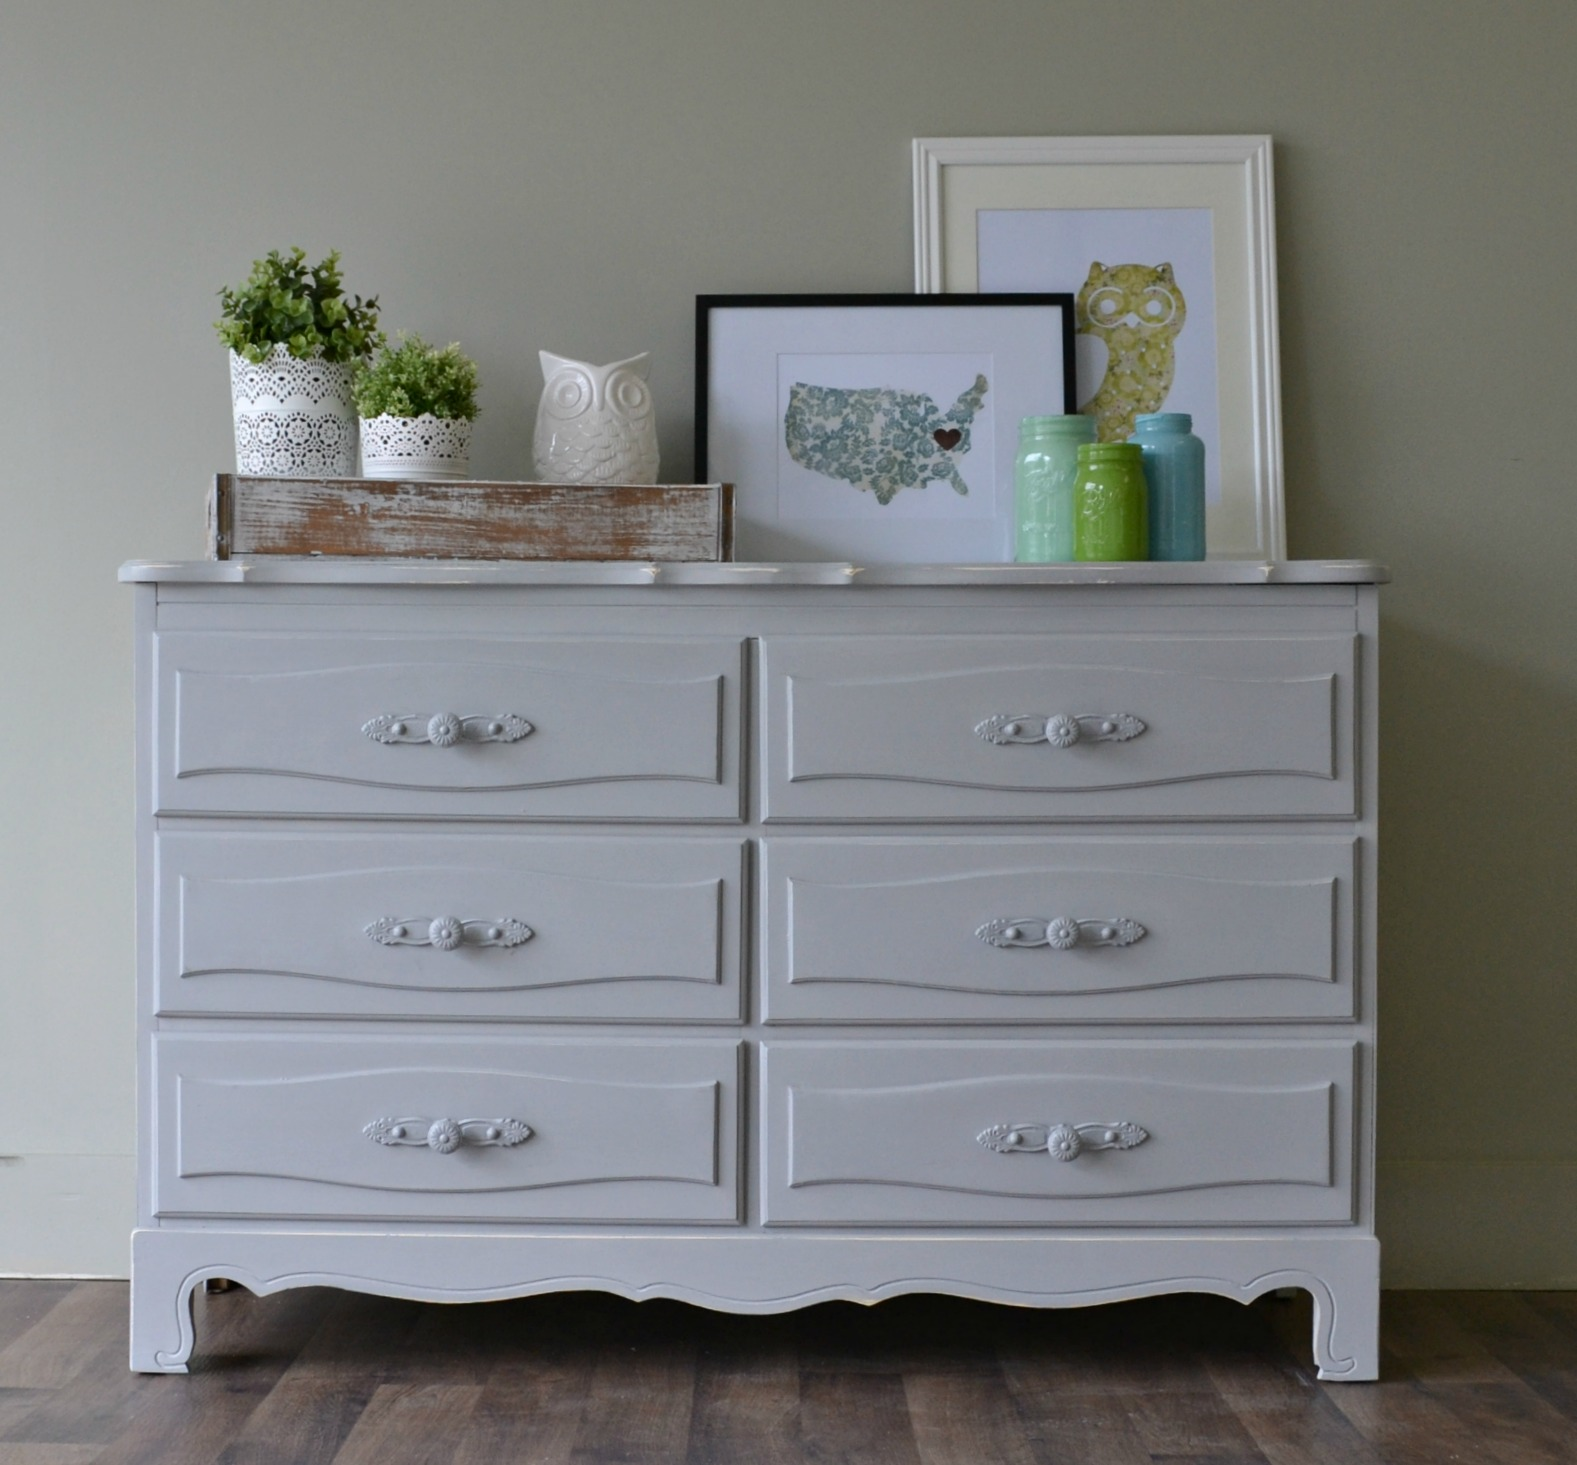 Popular Funky Junk: Curvy French Dresser with CHEVRON MR64